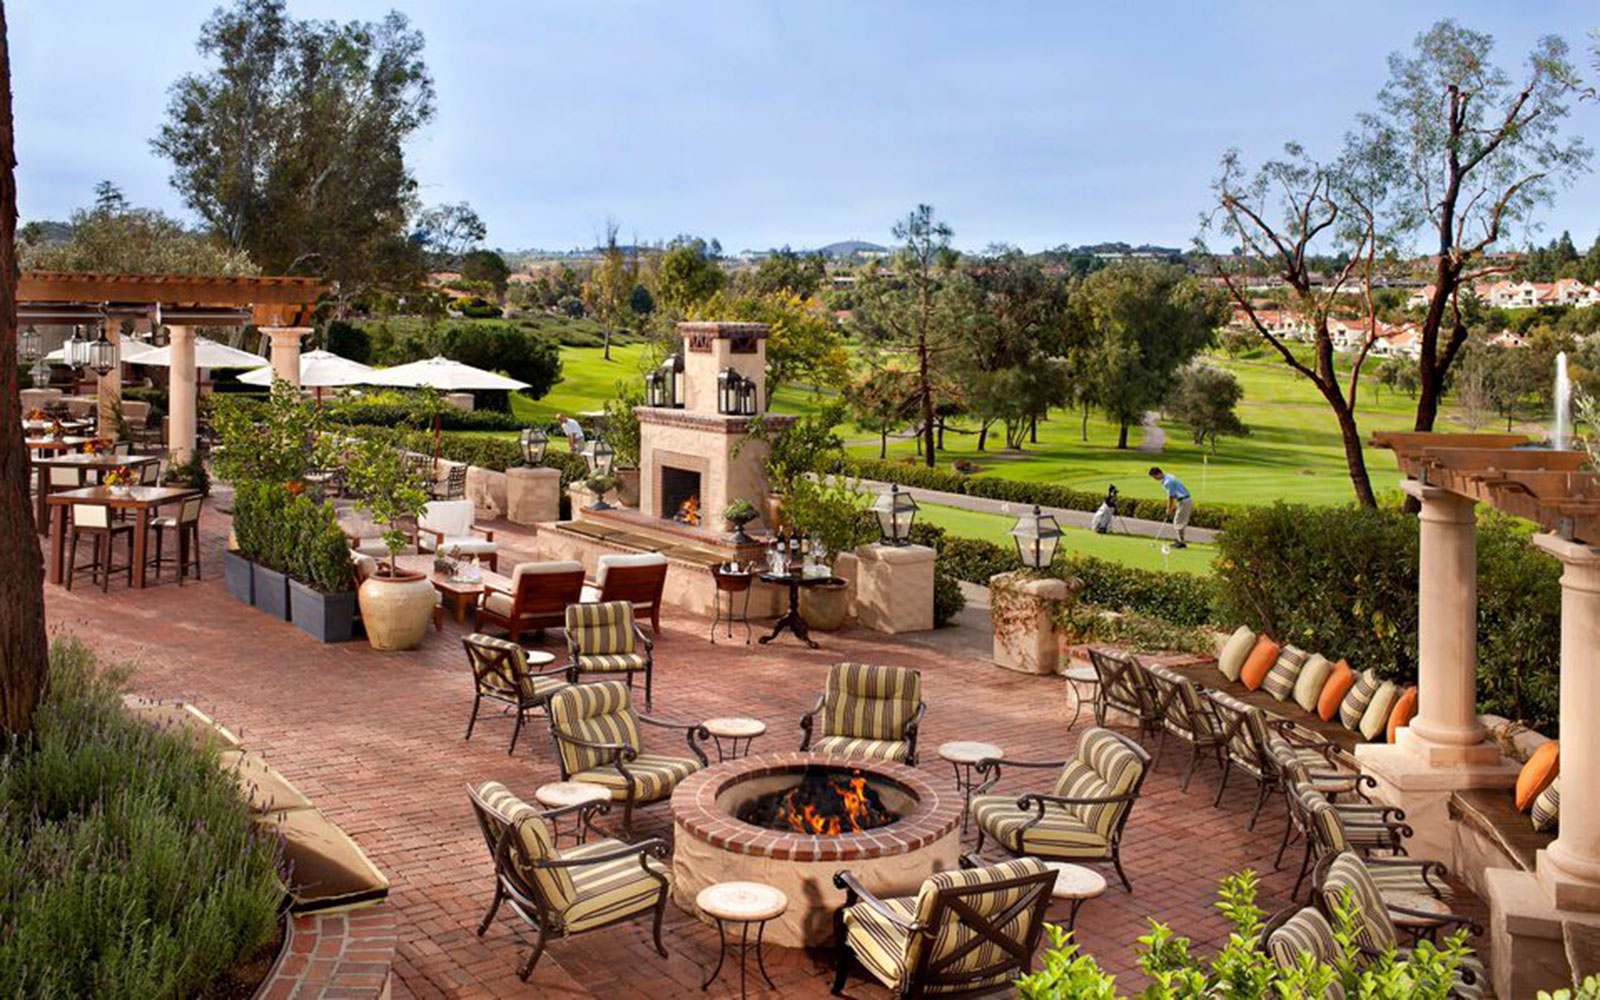 Ten of America's Best Outdoor Dining Spots, According to OpenTable: Veranda Fireside Lounge & Restaurant in San Diego